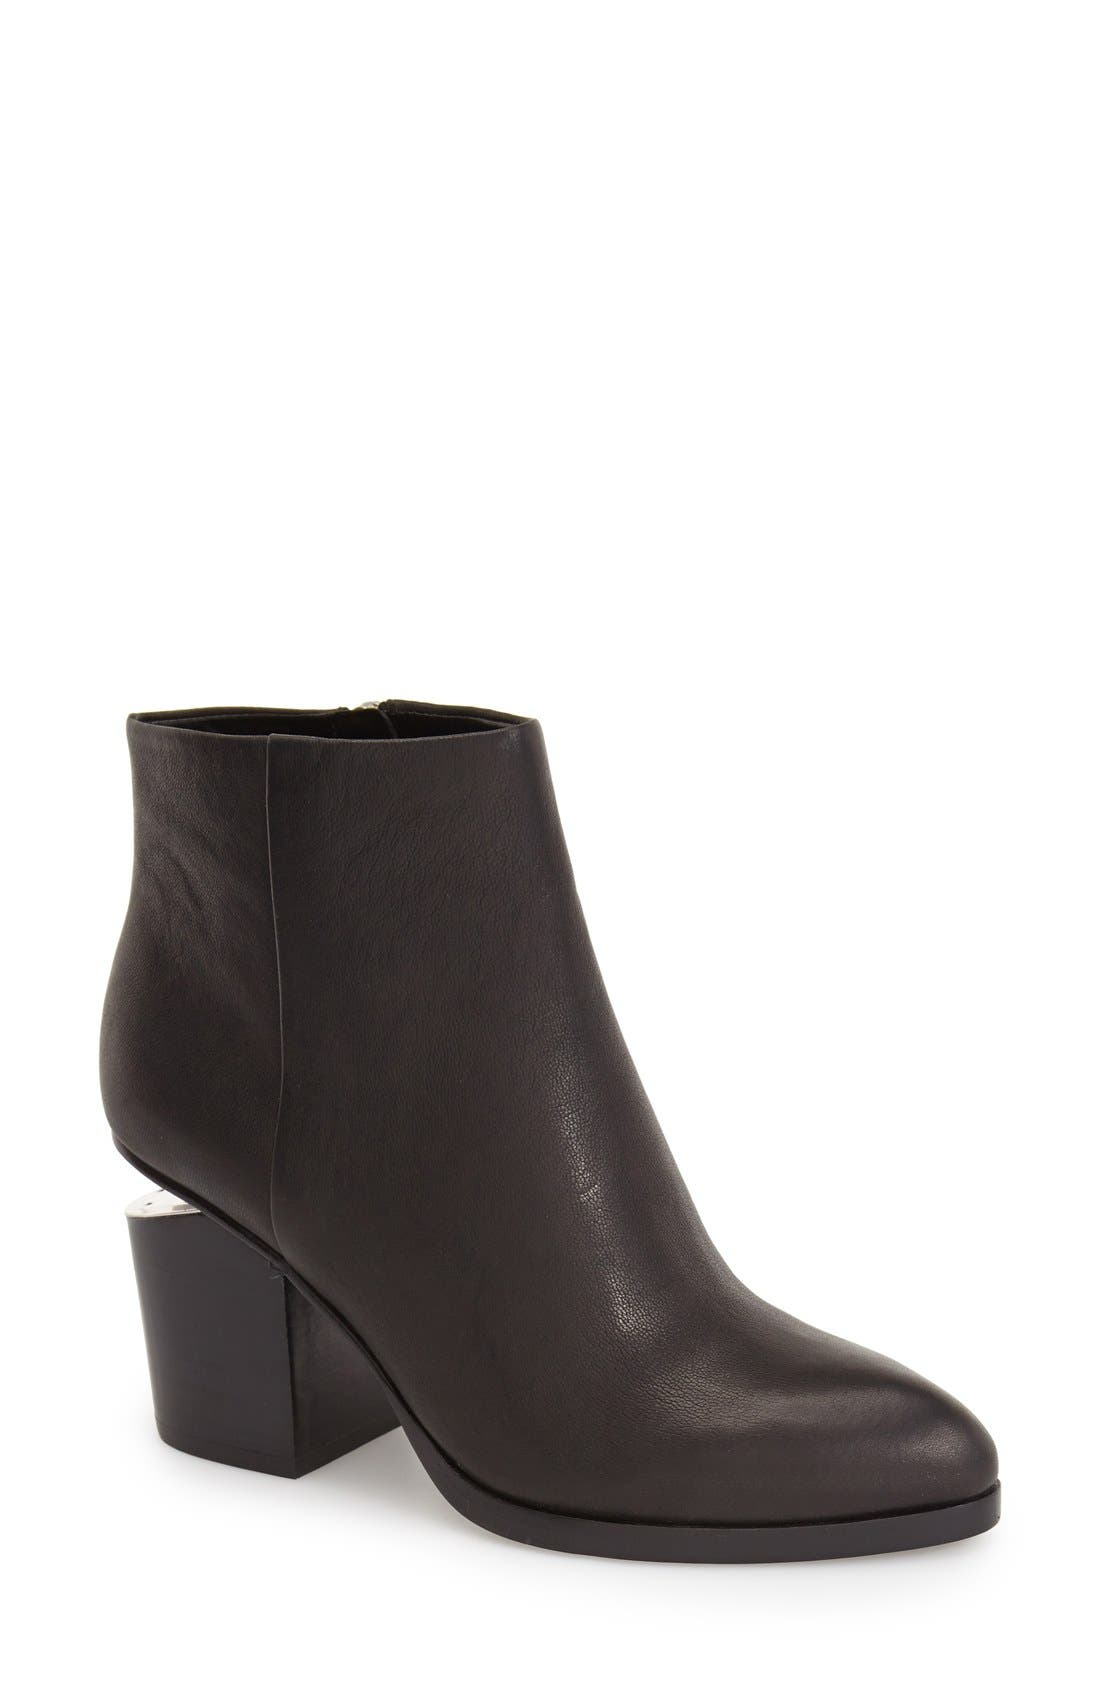 Alexander Wang Gabi Leather Bootie, Black